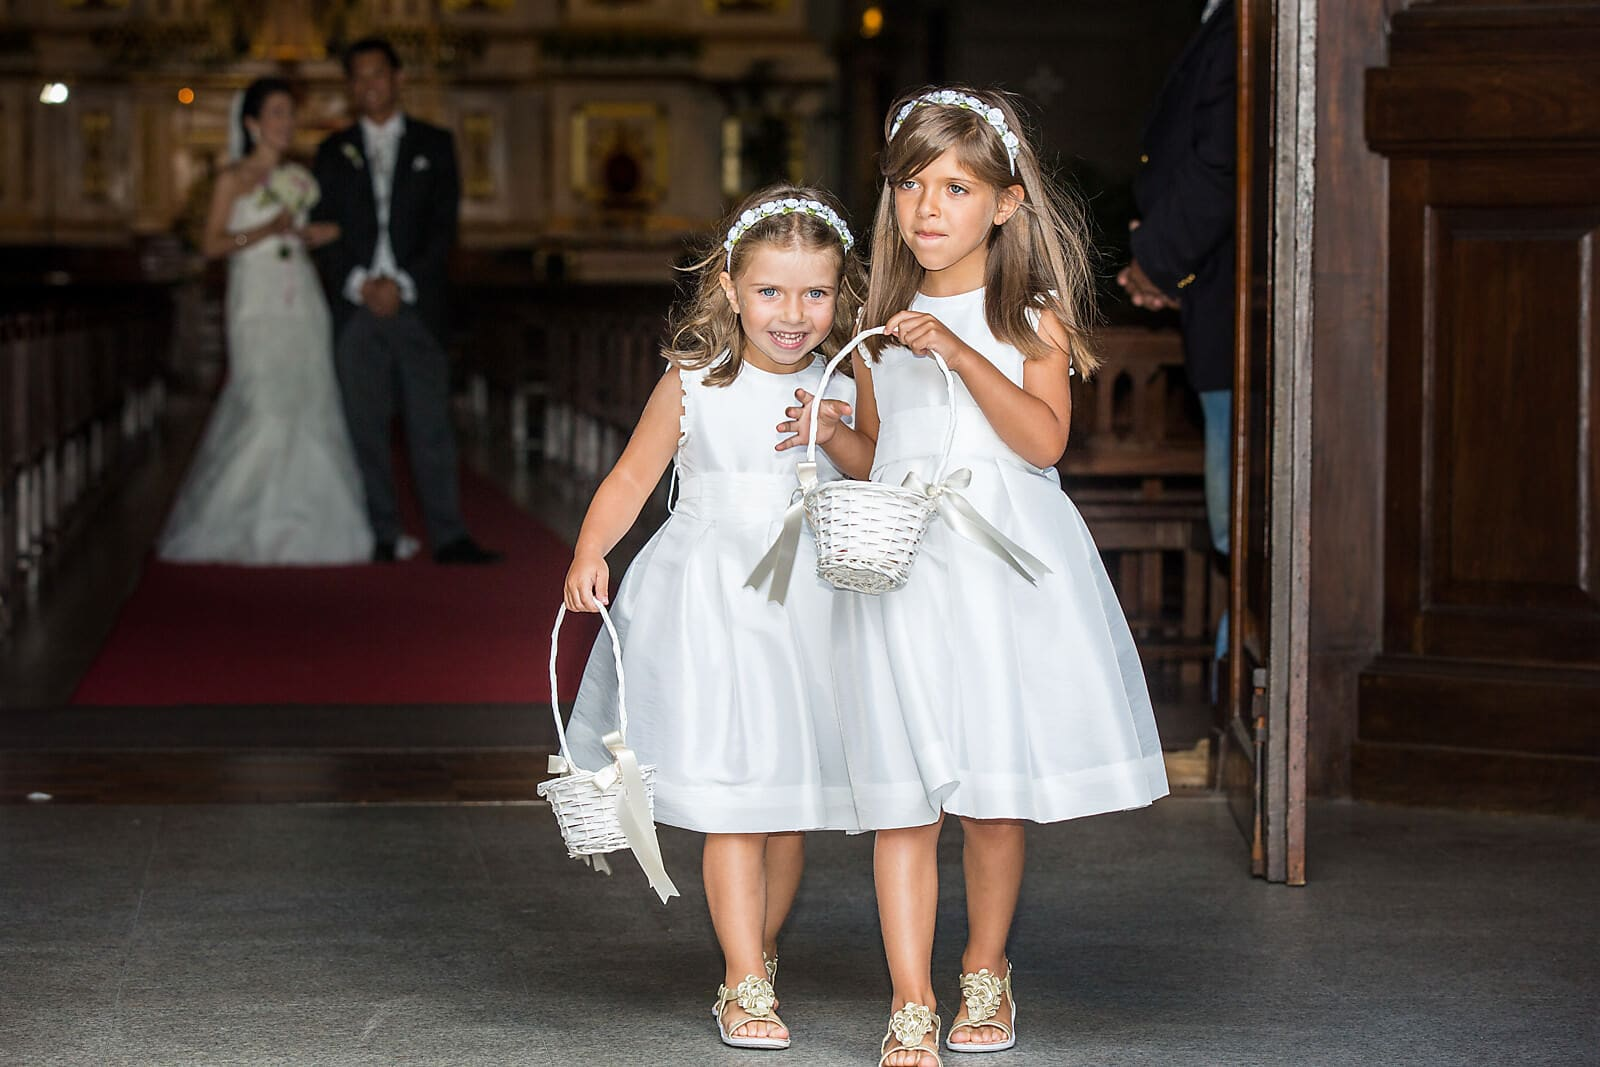 Flower girls walk out of the church ahead of the bride and groom